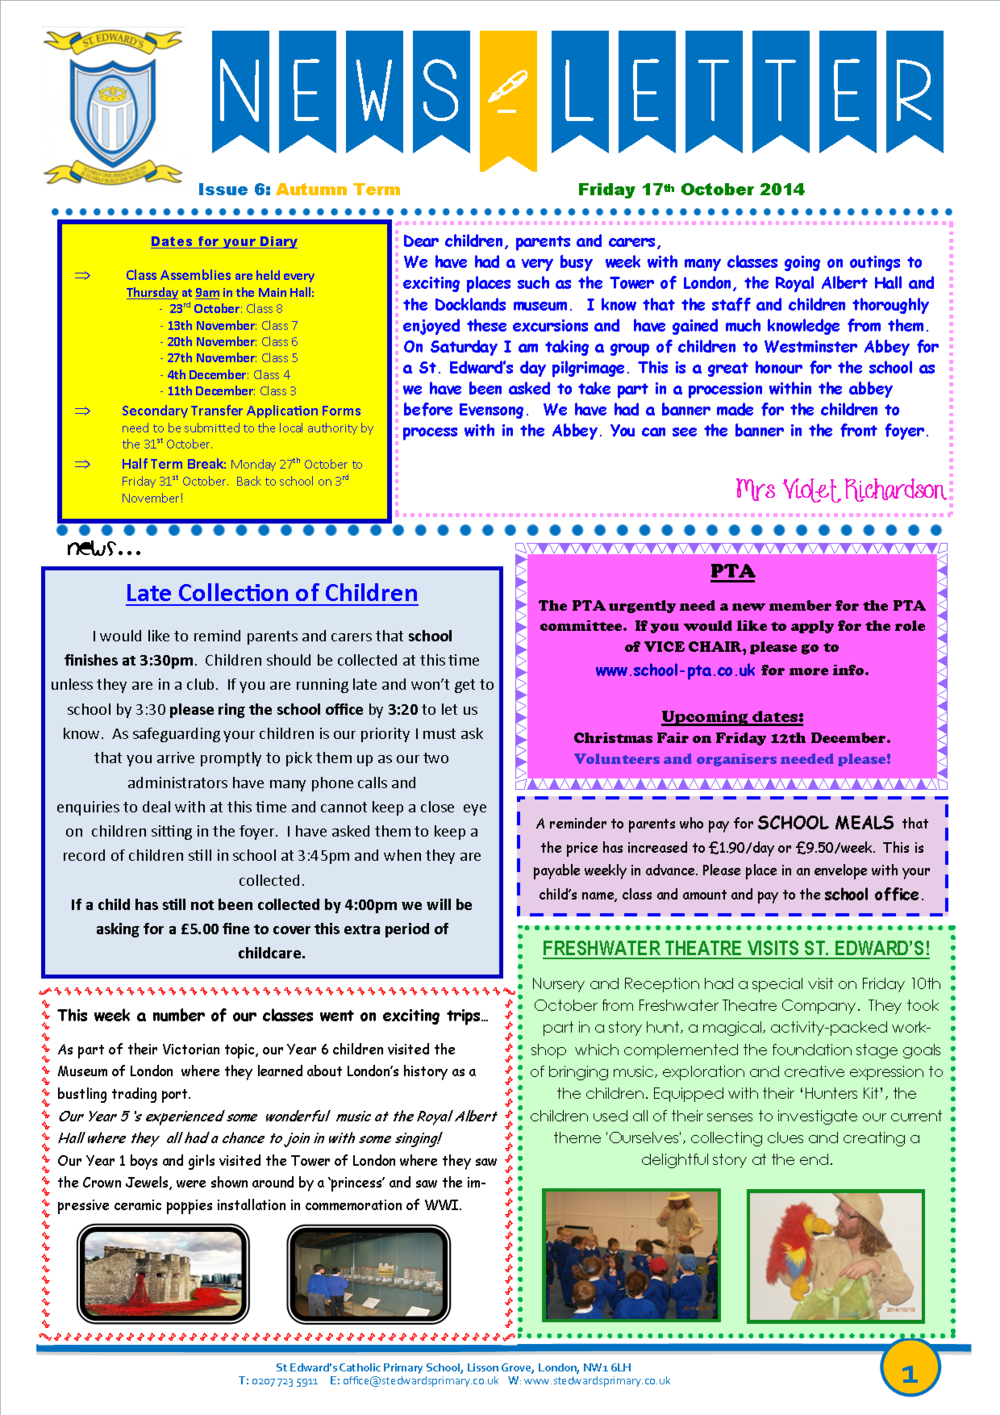 St Edward's Newsletter Issue 6 17 October 2014.png